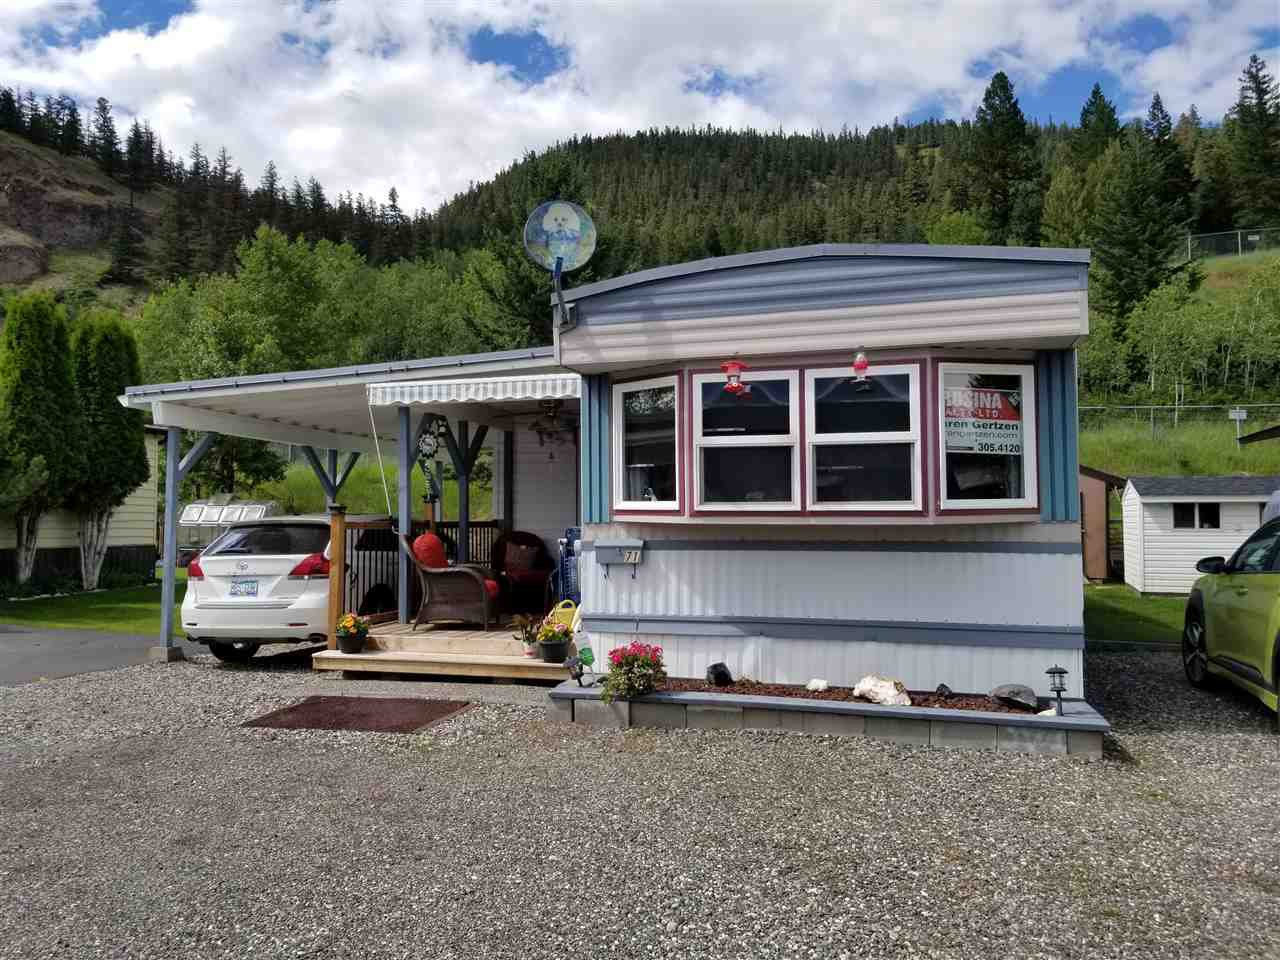 """Main Photo: 71 1700 S BROADWAY Avenue in Williams Lake: Williams Lake - City Manufactured Home for sale in """"NORTHSIDE VILLAGE"""" (Williams Lake (Zone 27))  : MLS®# R2471520"""